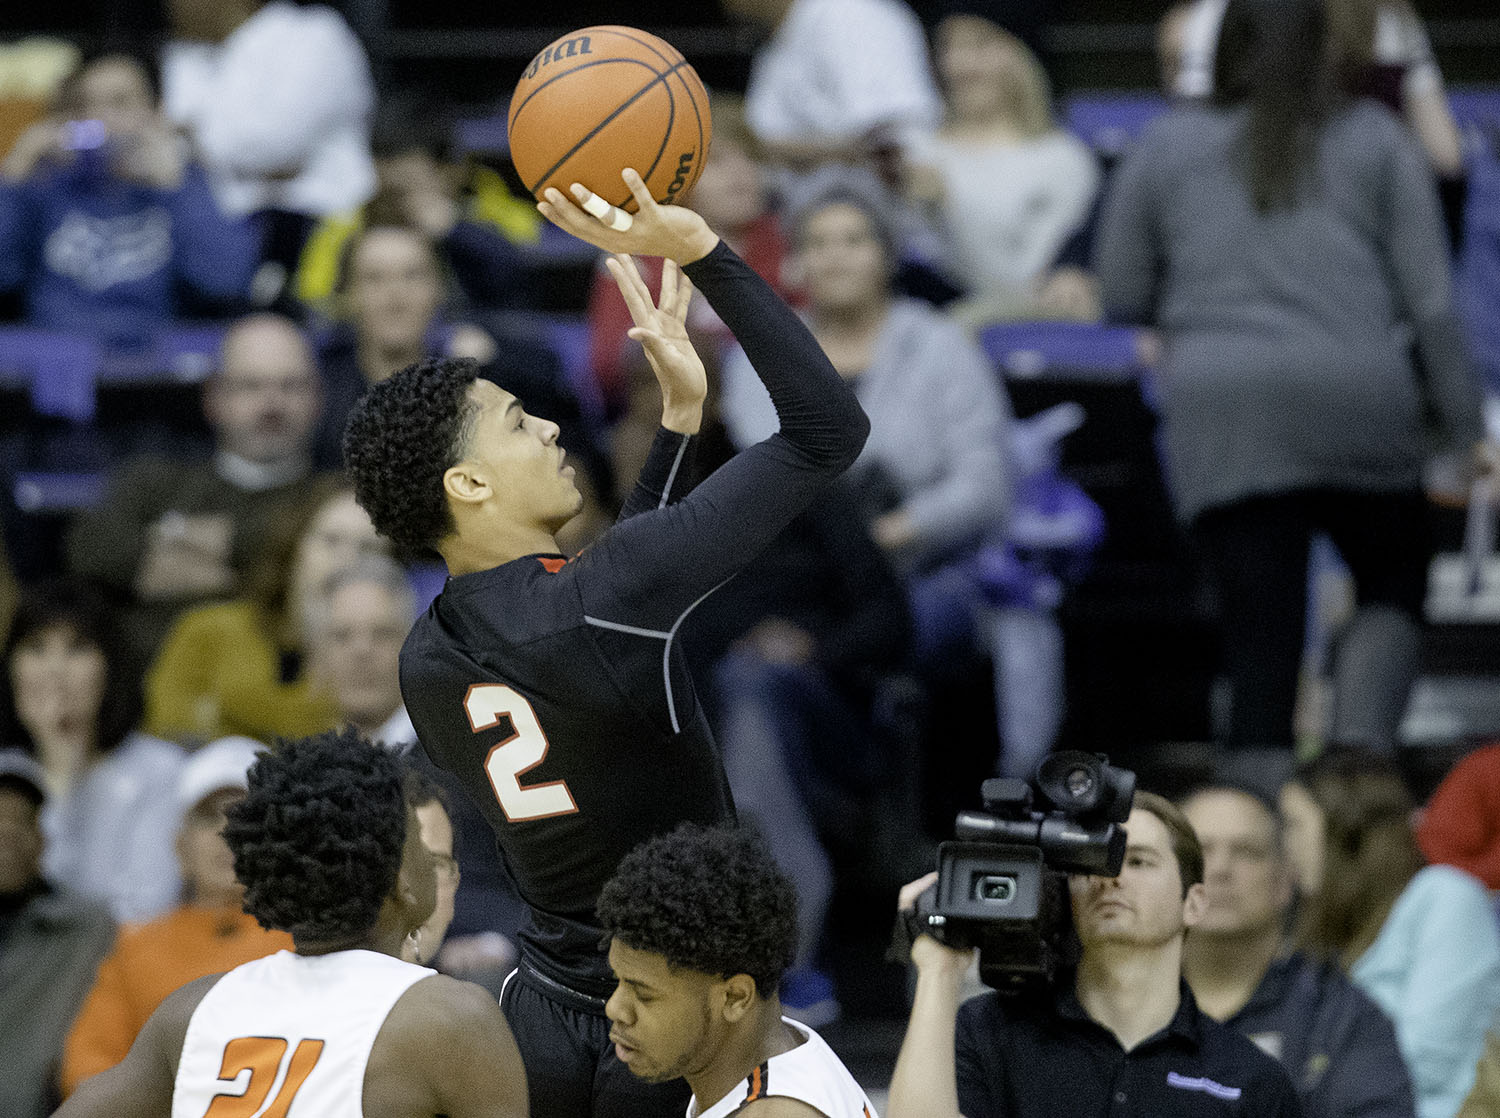 Springfield's Bennie Slater takes a shot against Lanphier during the Boys City Tournament at the Bank of Springfield Center Friday, Jan. 18, 2019.  [Ted Schurter/The State Journal-Register]